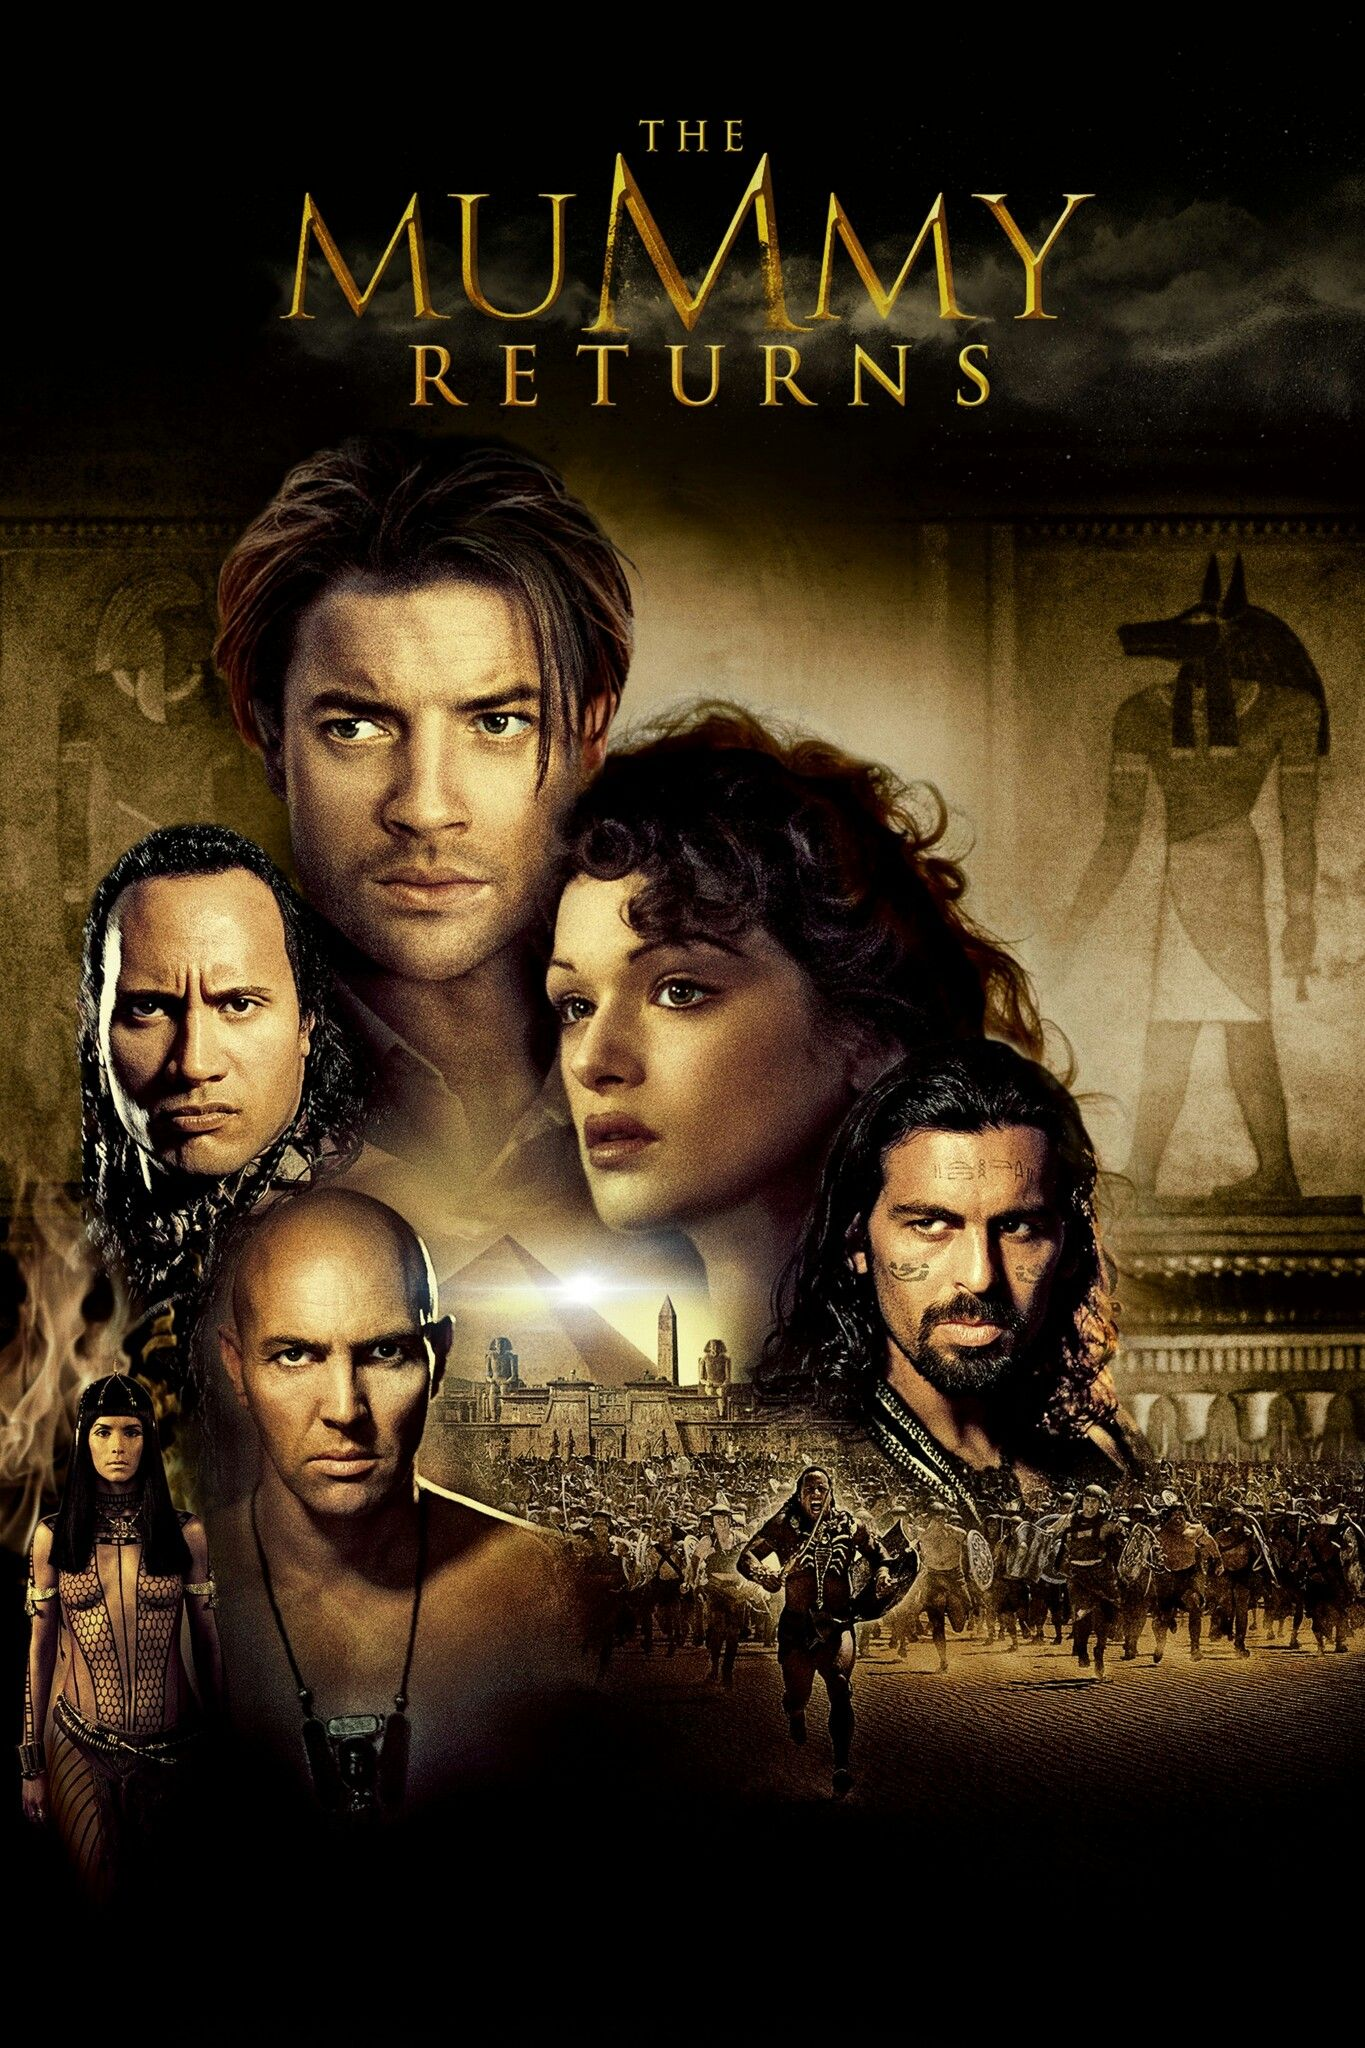 The Mummy Returns Movie Poster Fantastic Movie Posters